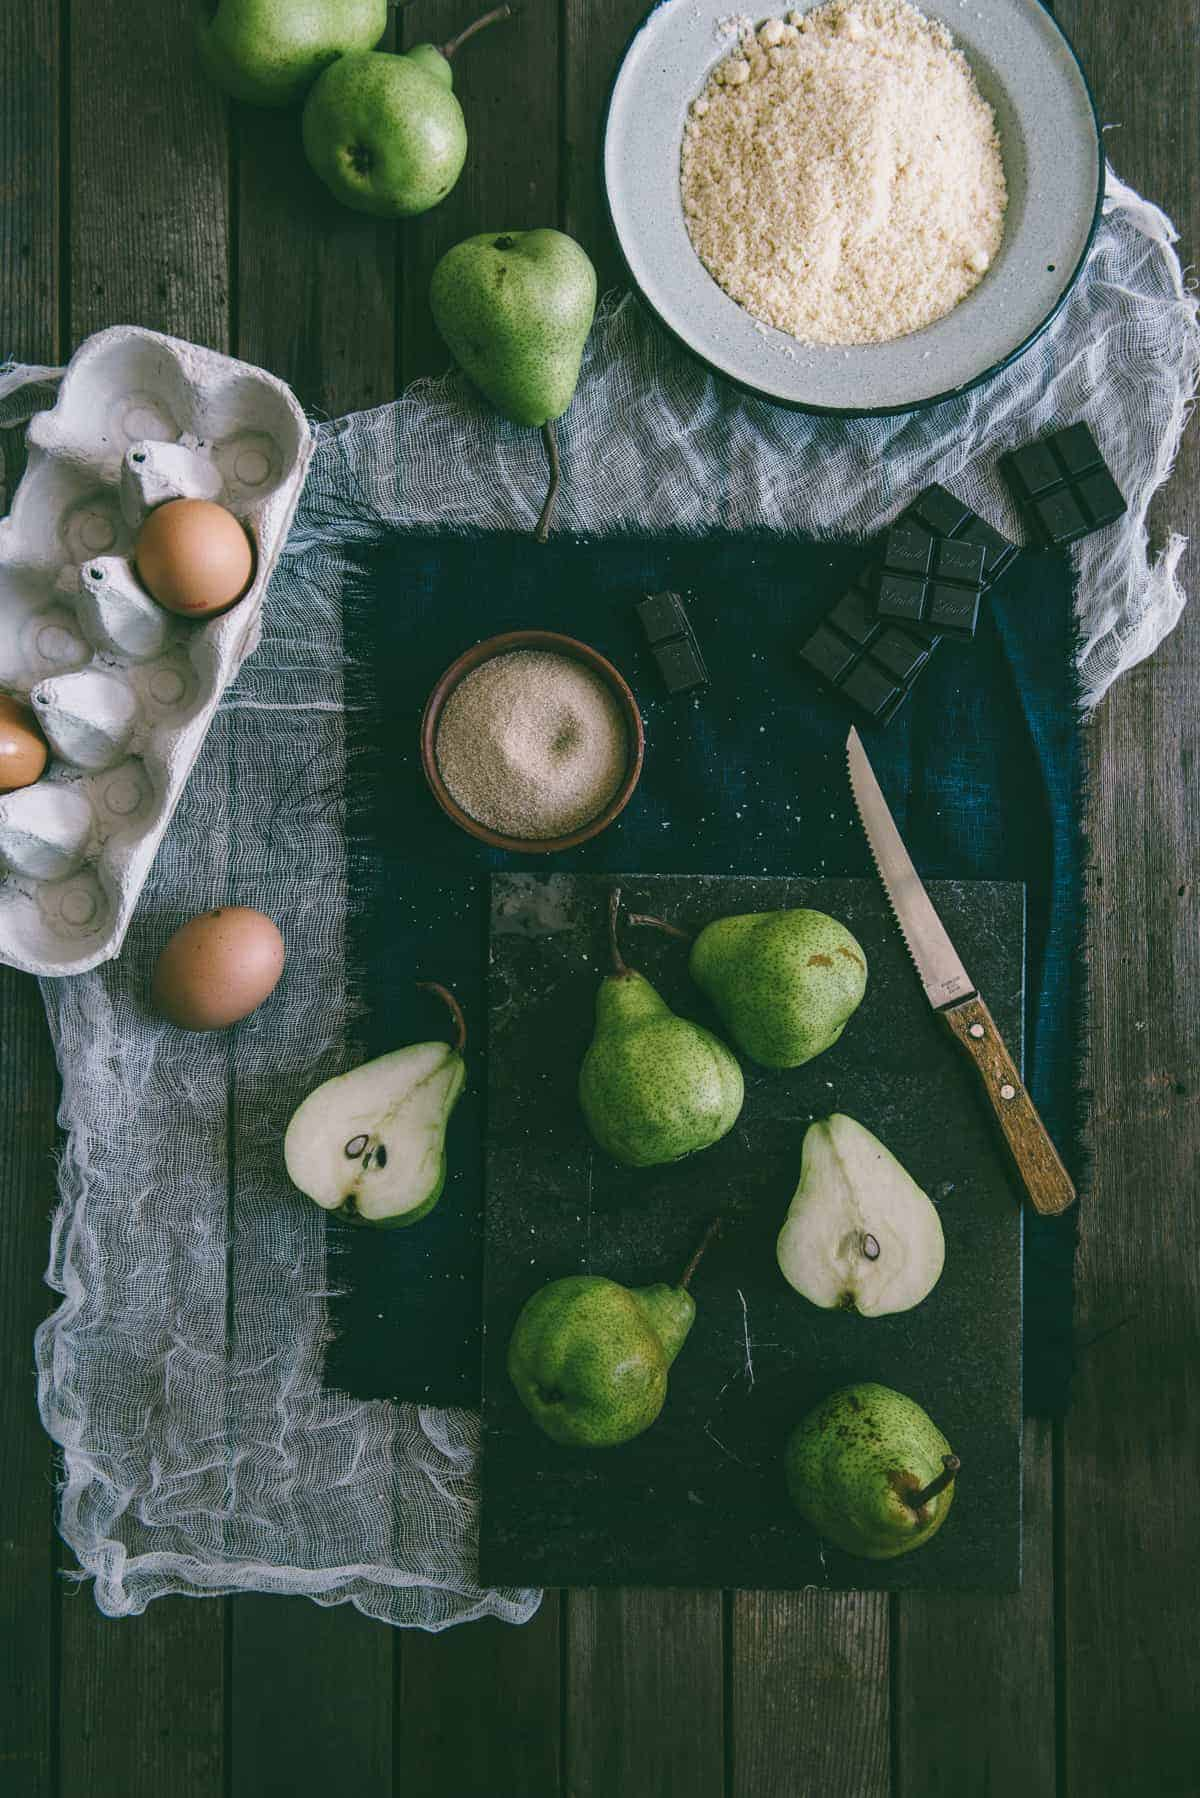 pears on a table with eggs and almond flour